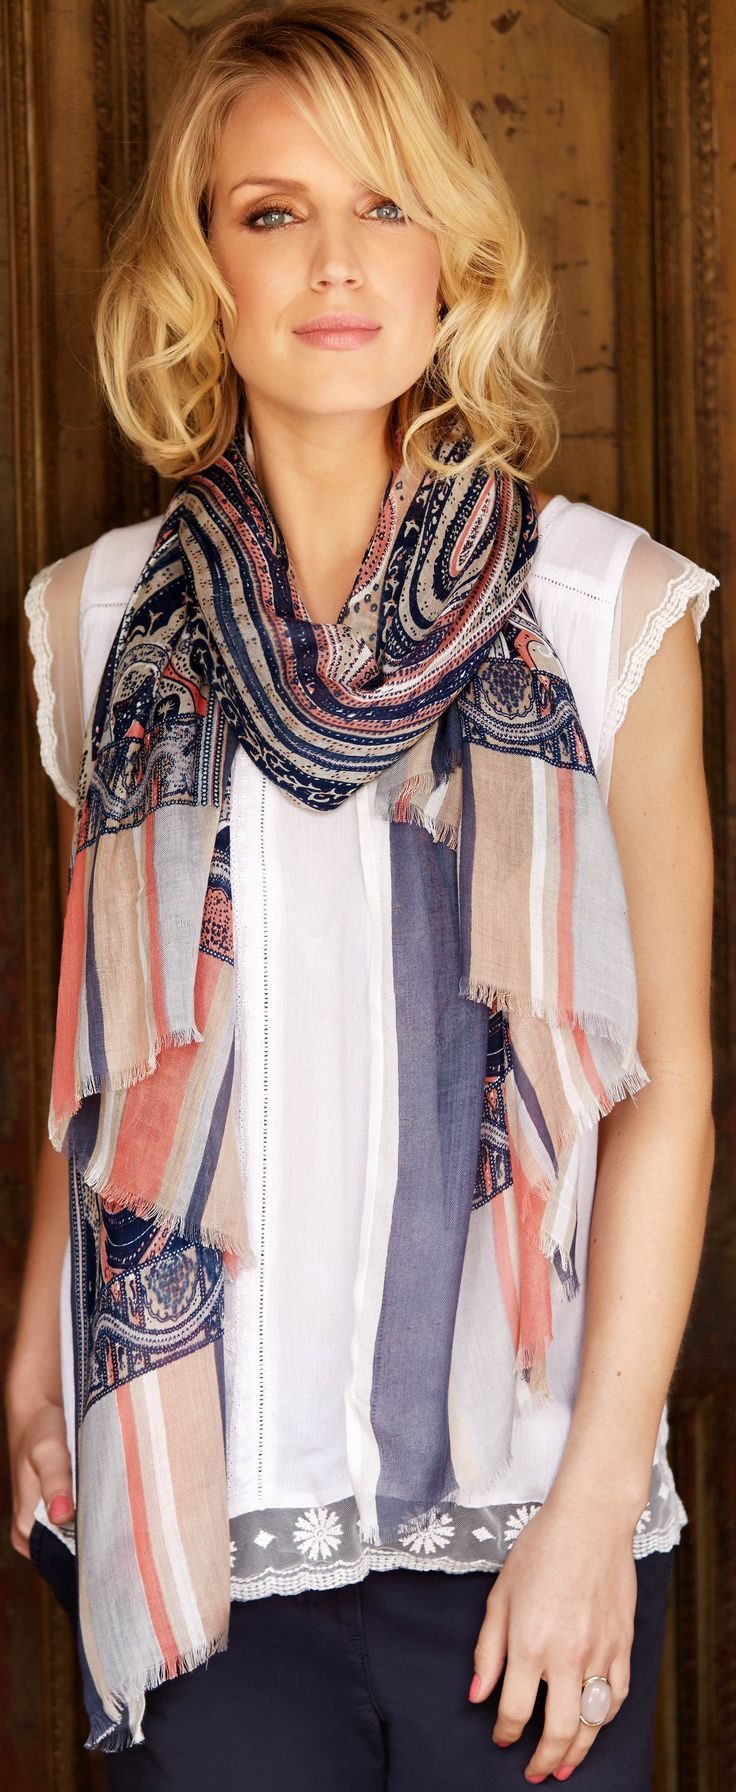 Here's a great way to wear modern lace trend for weekends. Wearing a scarf like this will keep your bra from showing. See more tips: http://www.boomerinas.com/2012/11/24/how-to-wear-lace-trend-for-women-over-40-50-60/